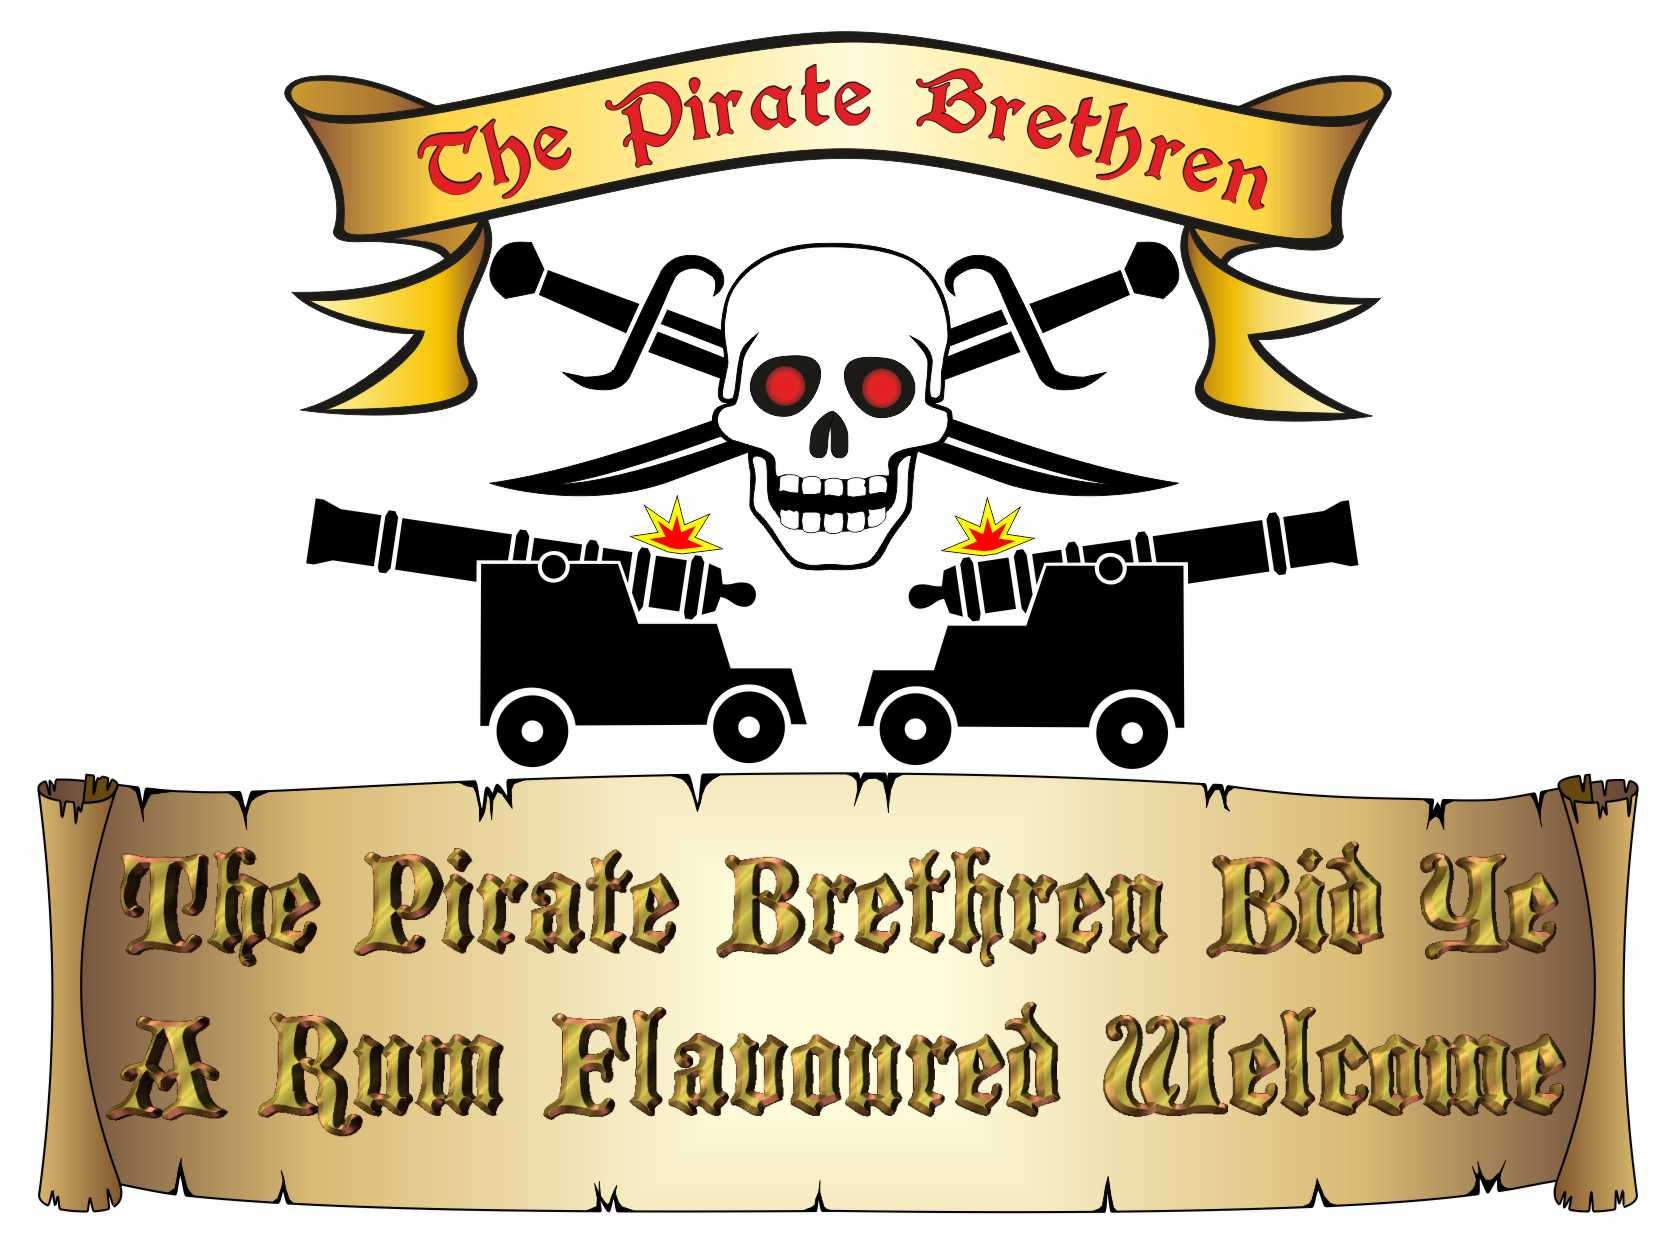 Pirate Brethren Welcome